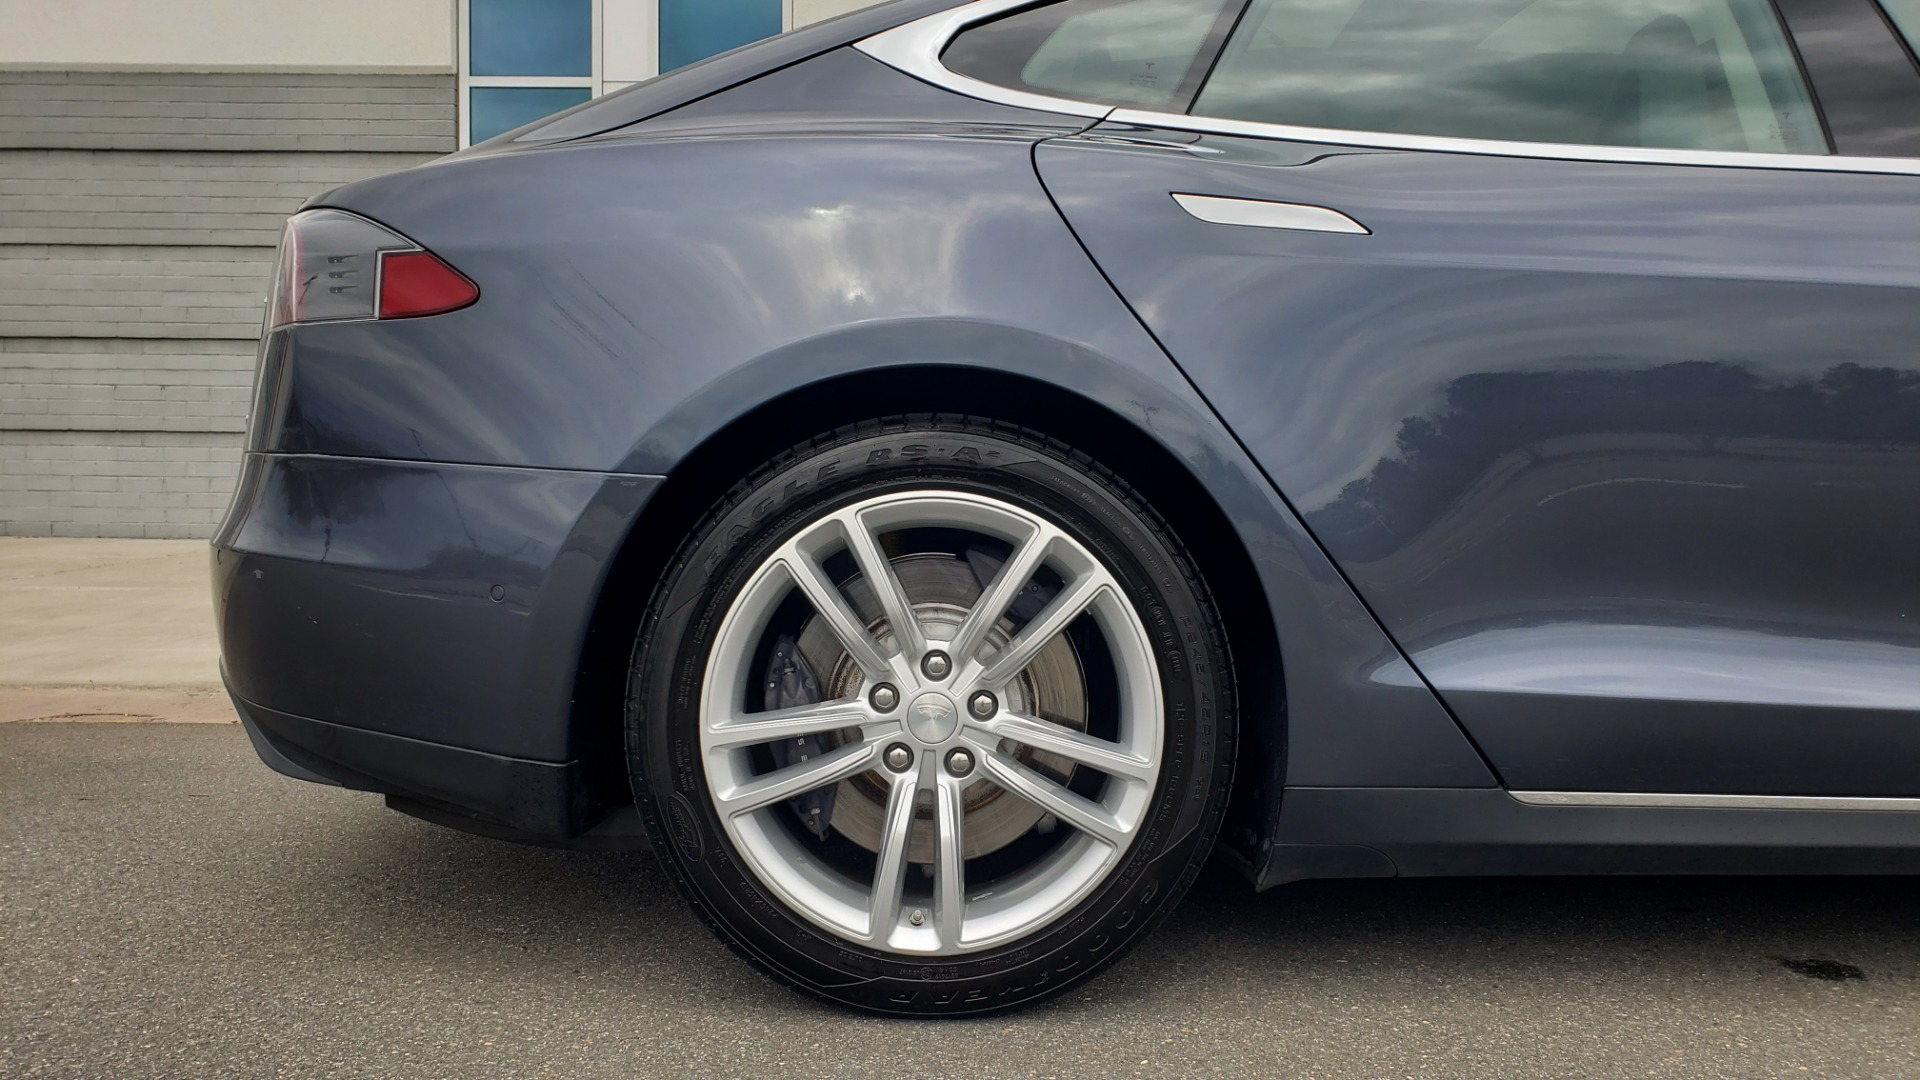 Used 2014 Tesla MODEL S 60 kWh BATTERY / TECH / NAV / SUBZERO / SUNROOF / REARVIEW for sale Sold at Formula Imports in Charlotte NC 28227 66